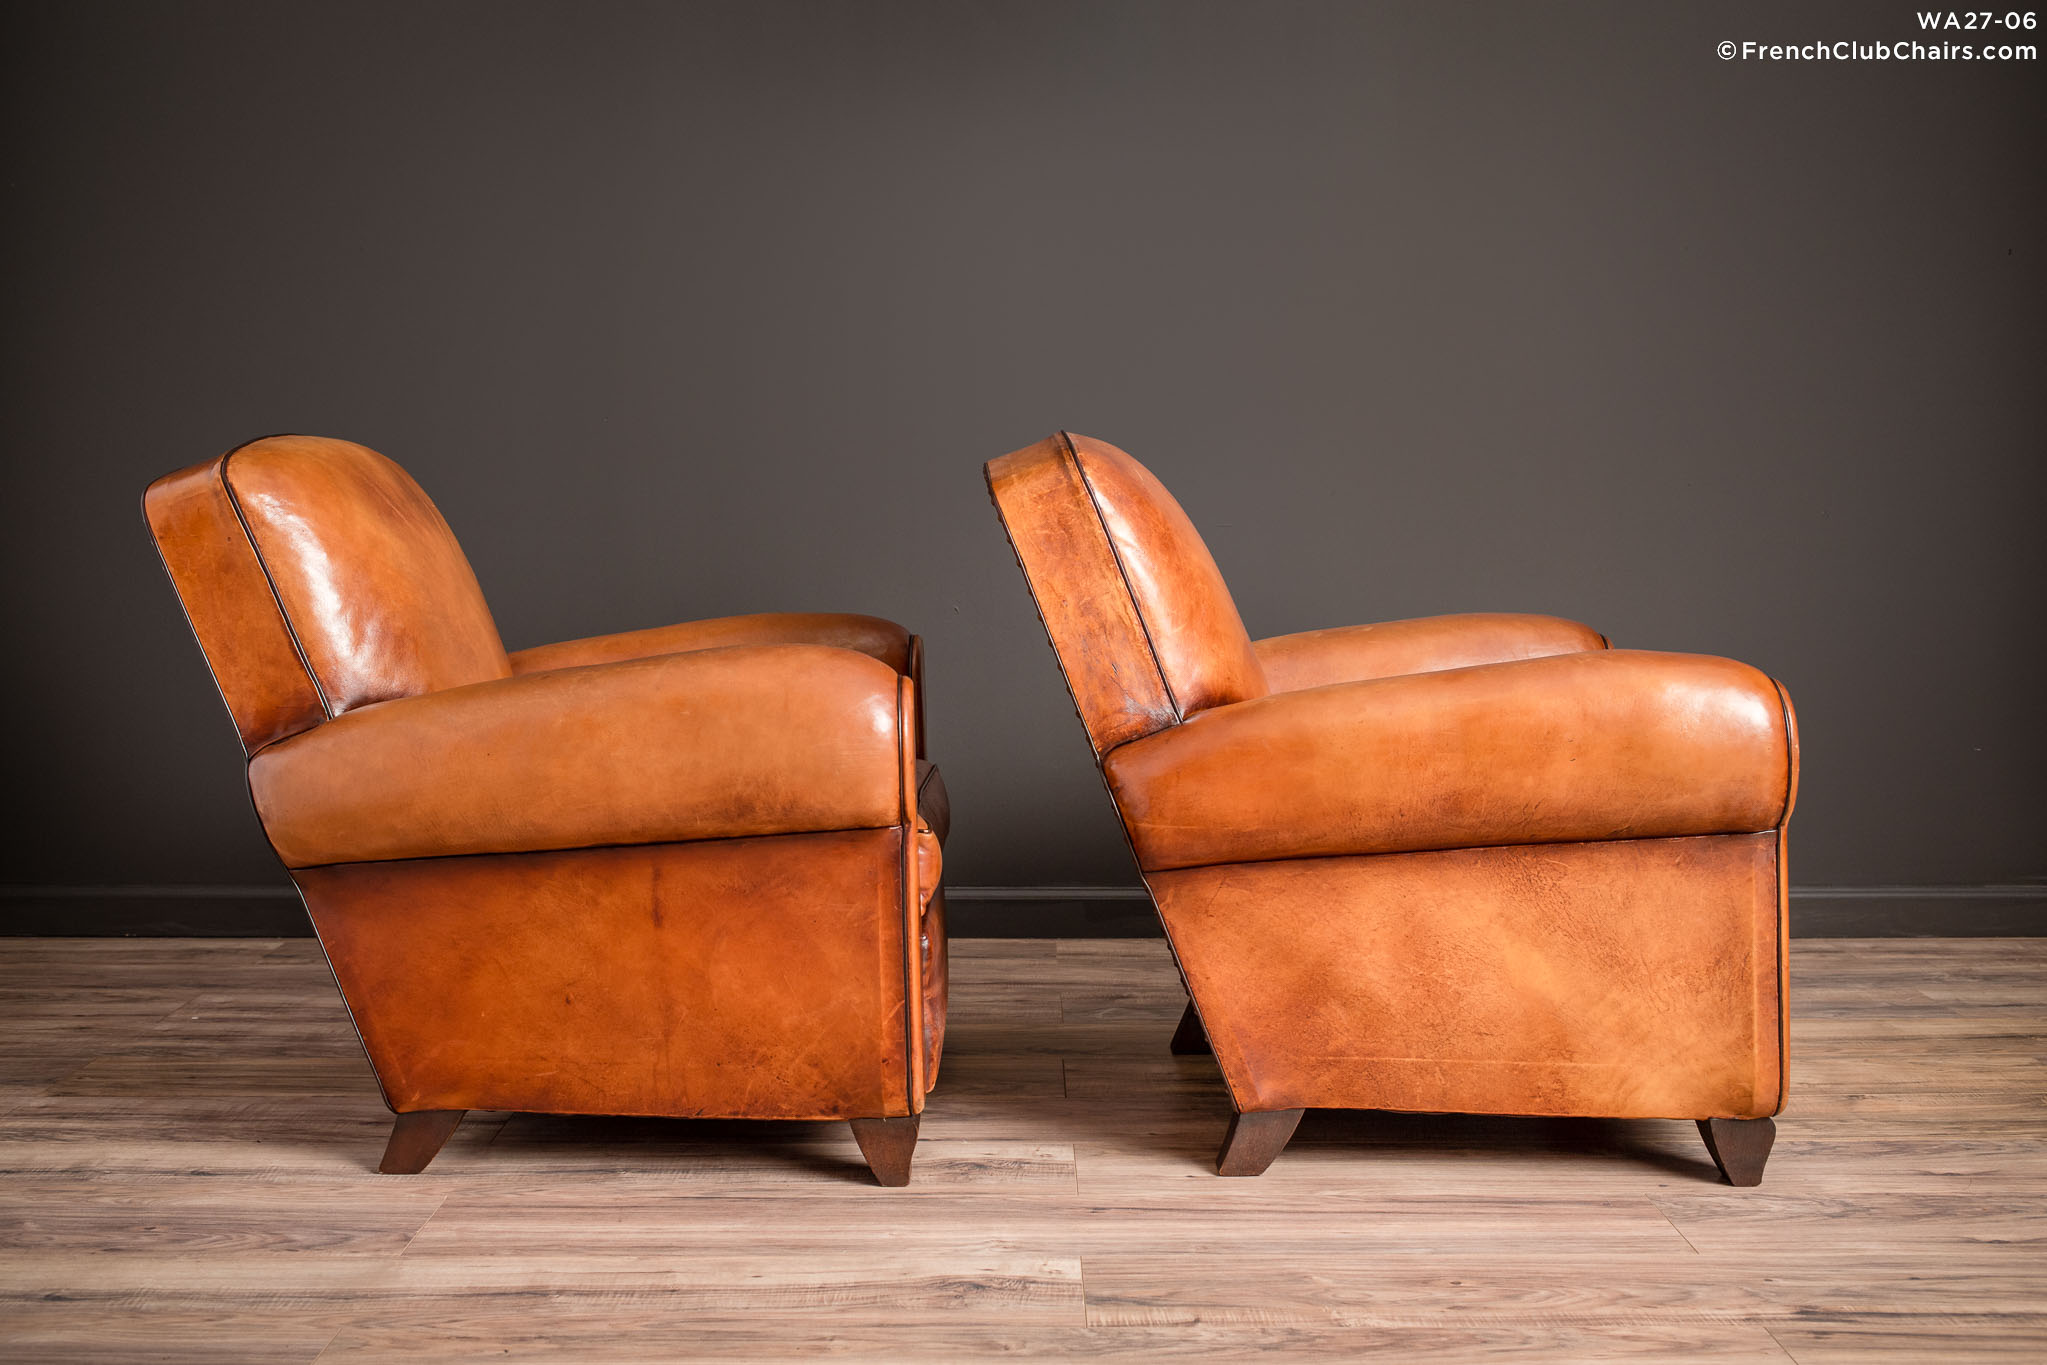 WA_27-06_Library_Giverny_Cognac_Pair_R_3RT-v01-williams-antiks-leather-french-club-chair-wa_fcccom